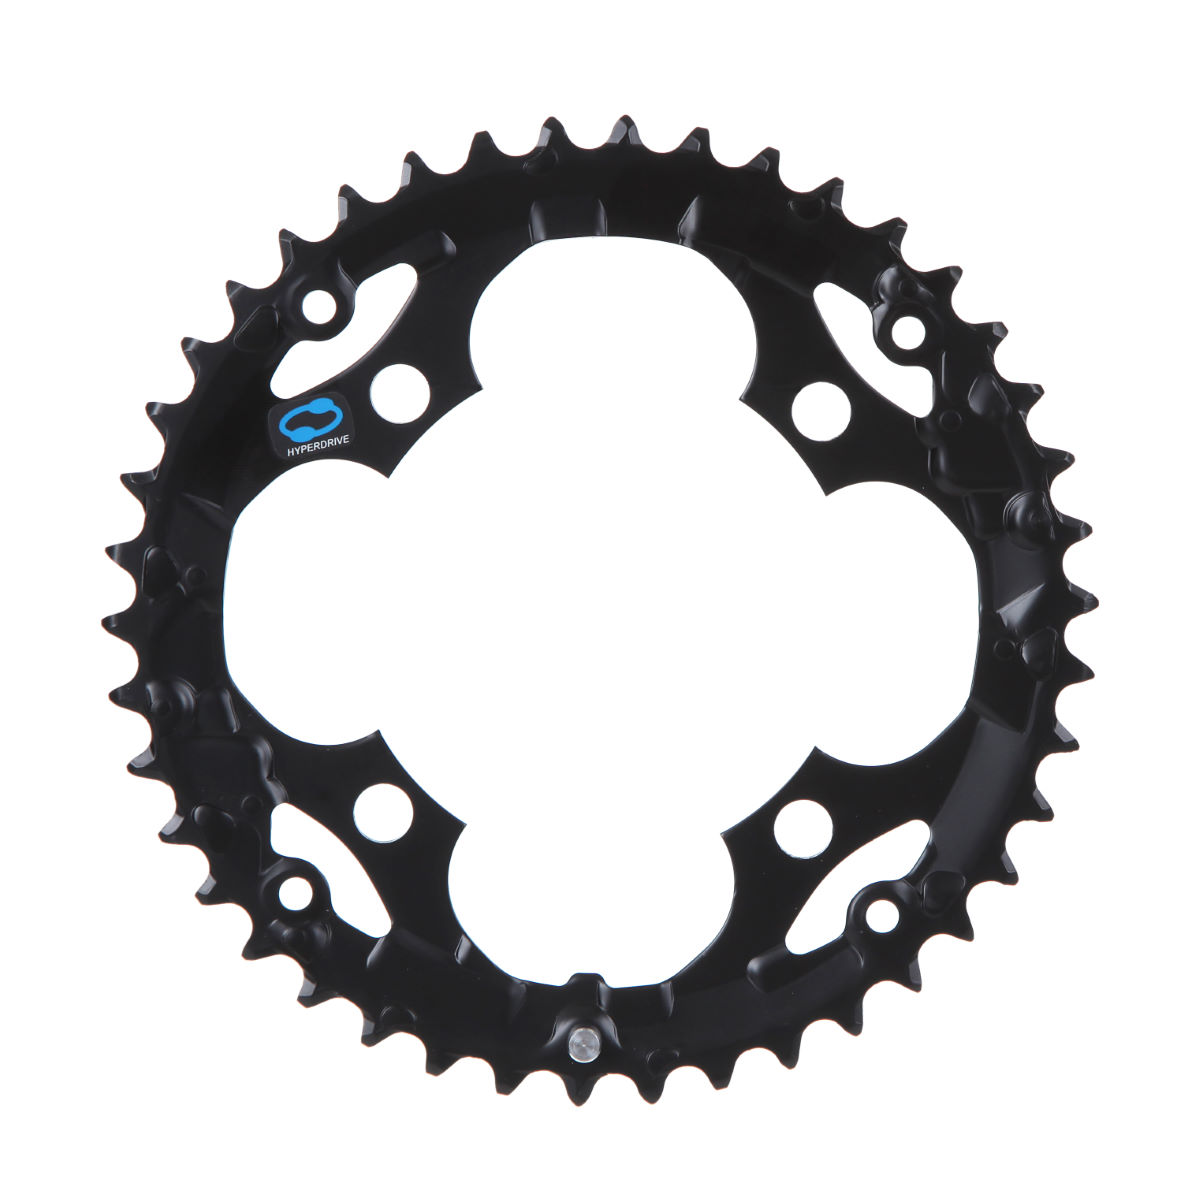 Plateau Shimano FC-M410/415 (noir, 42 dents) - 7/8 Speed 42T 104bcd